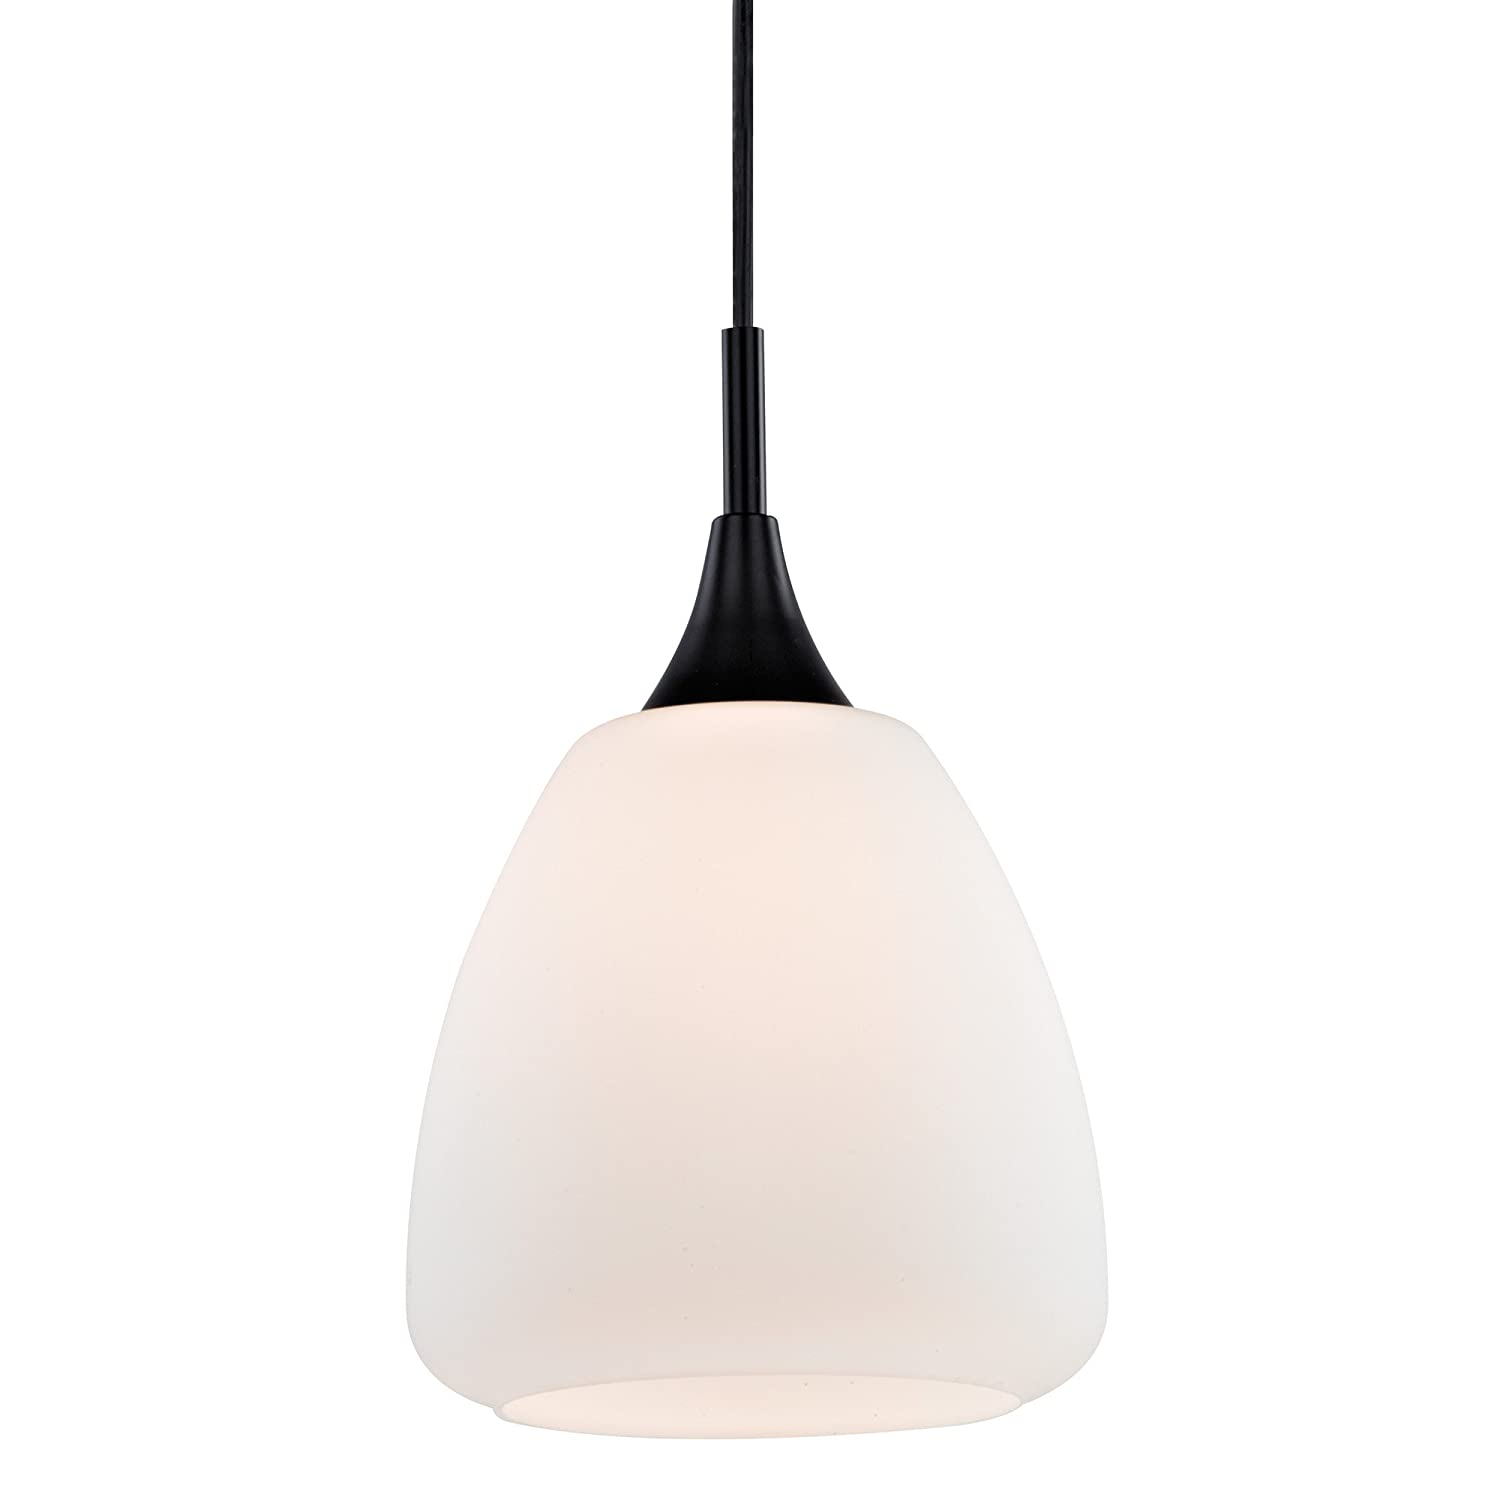 Westinghouse Lighting 6309300 One-Light Indoor Mini Pendant Matte Black Finish with Frosted Opal Glass